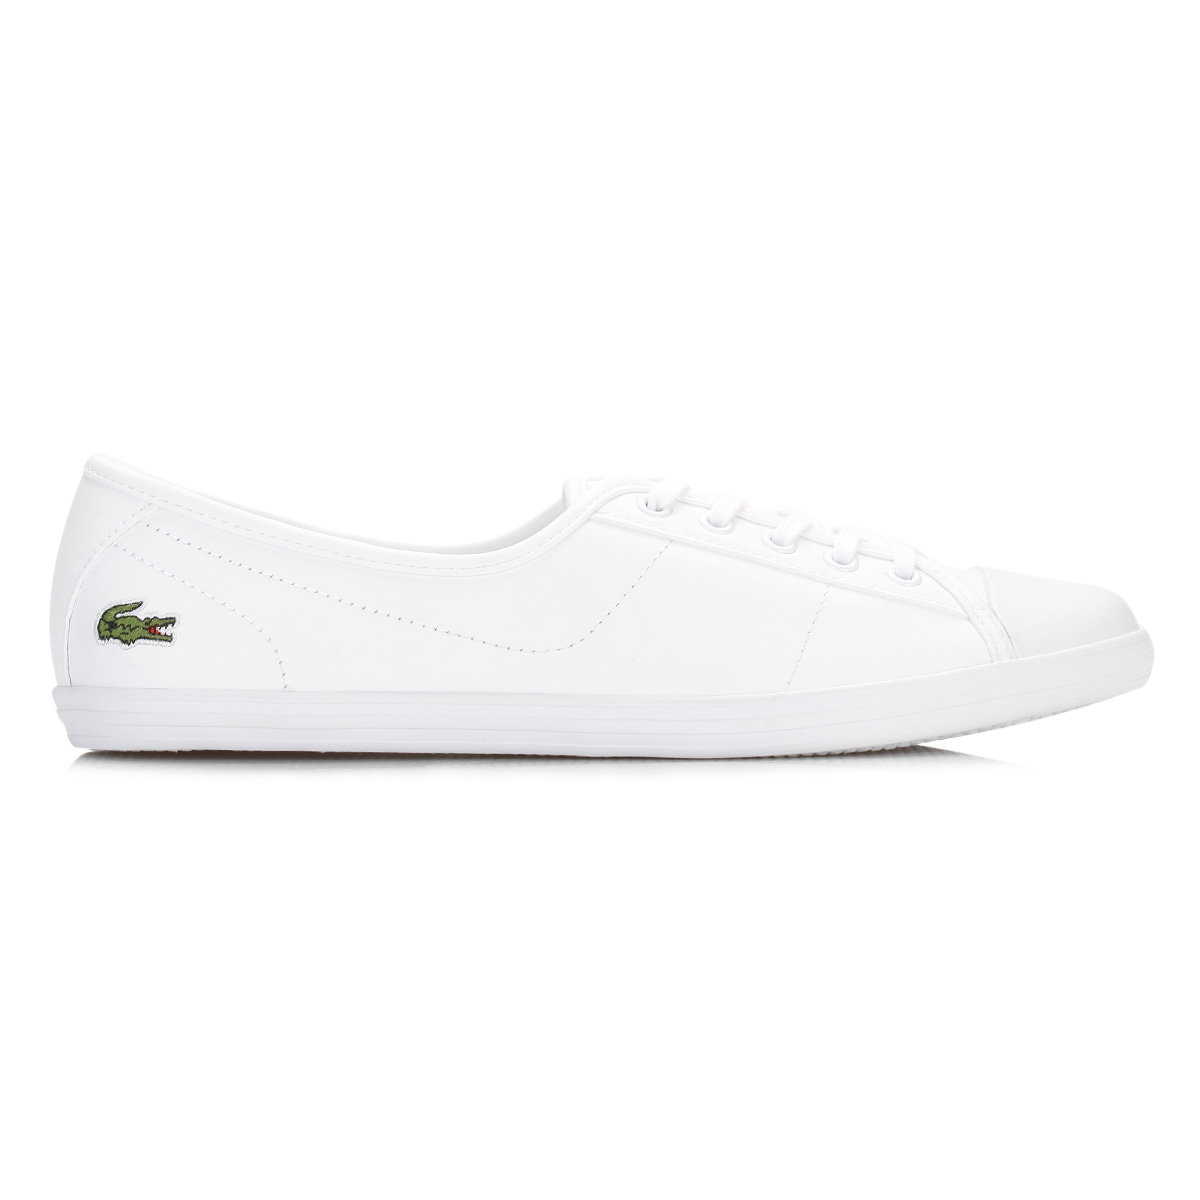 81850d4ecc2c8 Lacoste Womens Trainers White Ziane BL 1 SPW Leather Lace Up Shoes ...